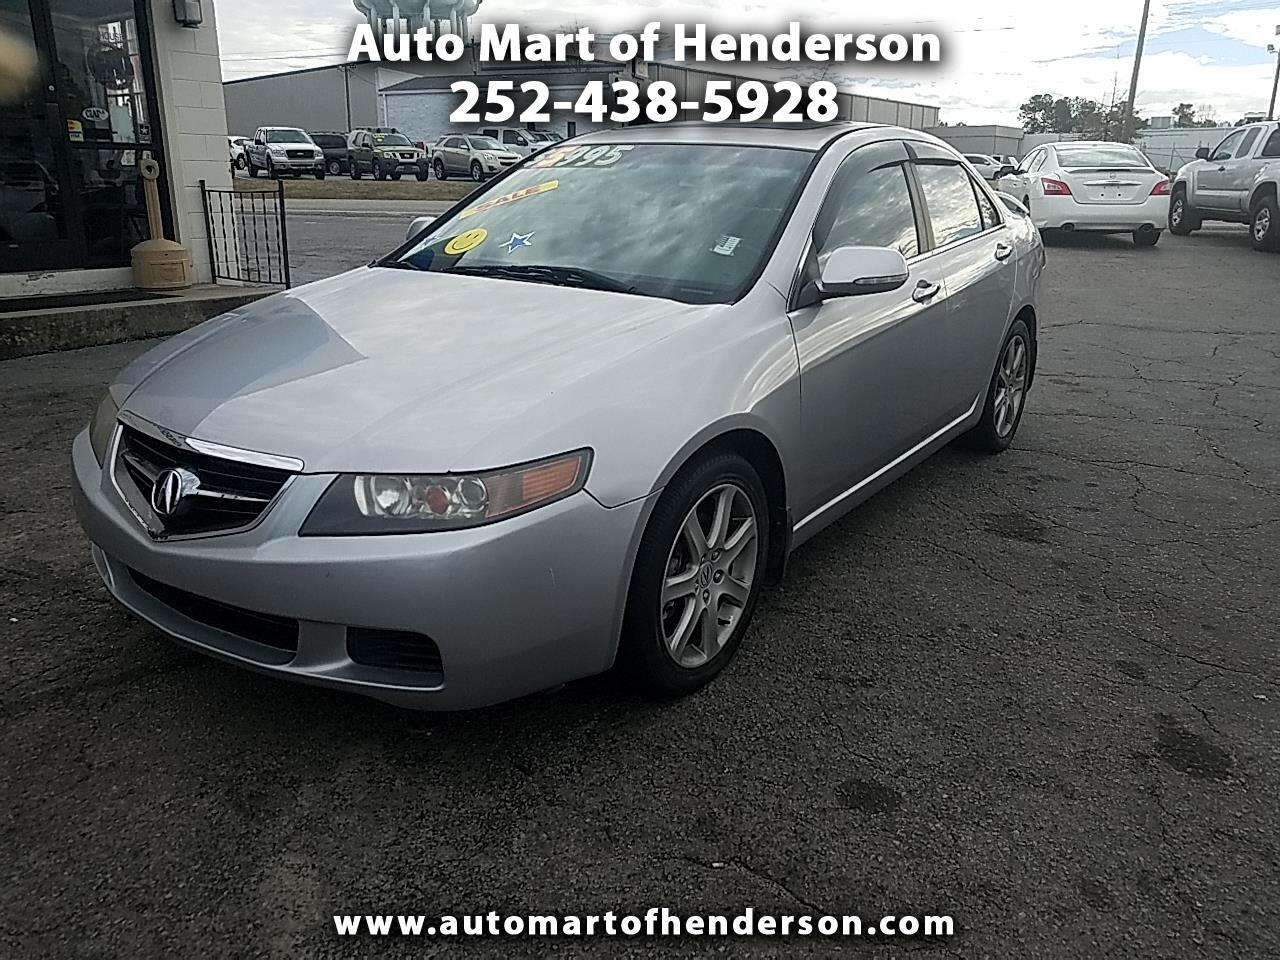 2004 Acura TSX 6-speed MT